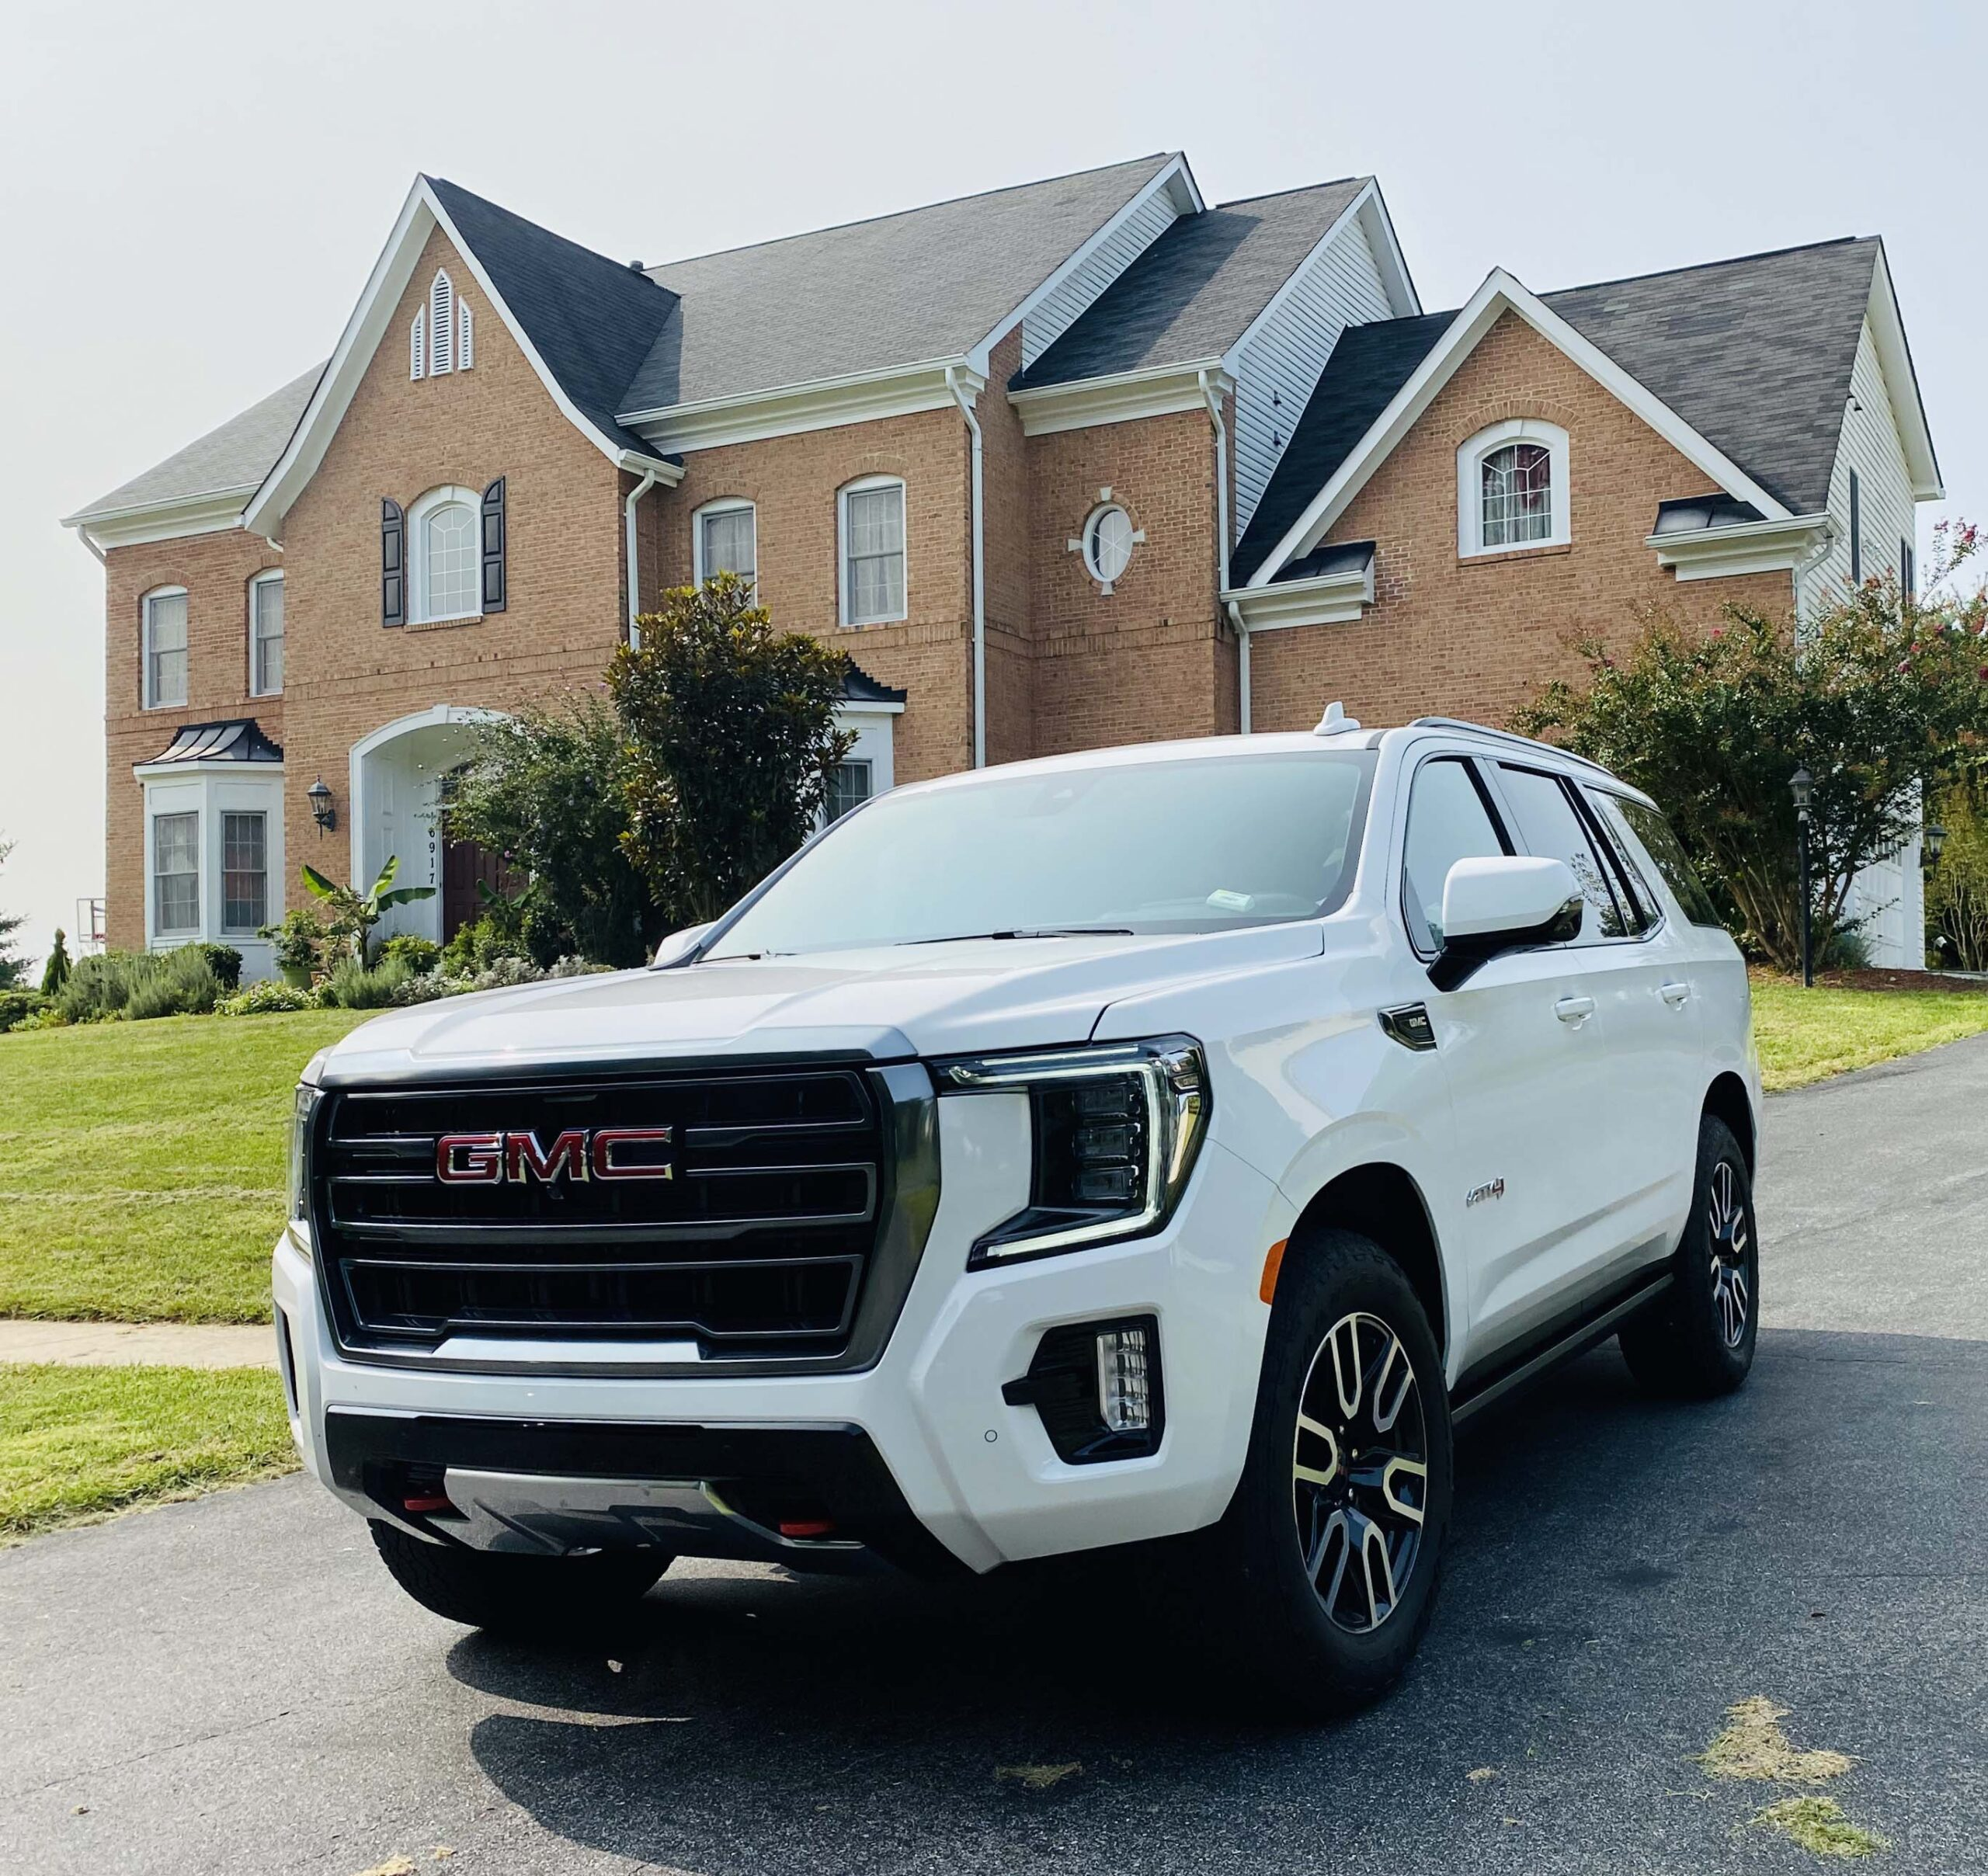 2021 Gmc Yukon 4wd At4 Stronger Bolder And Smarter Automotive Rhythms